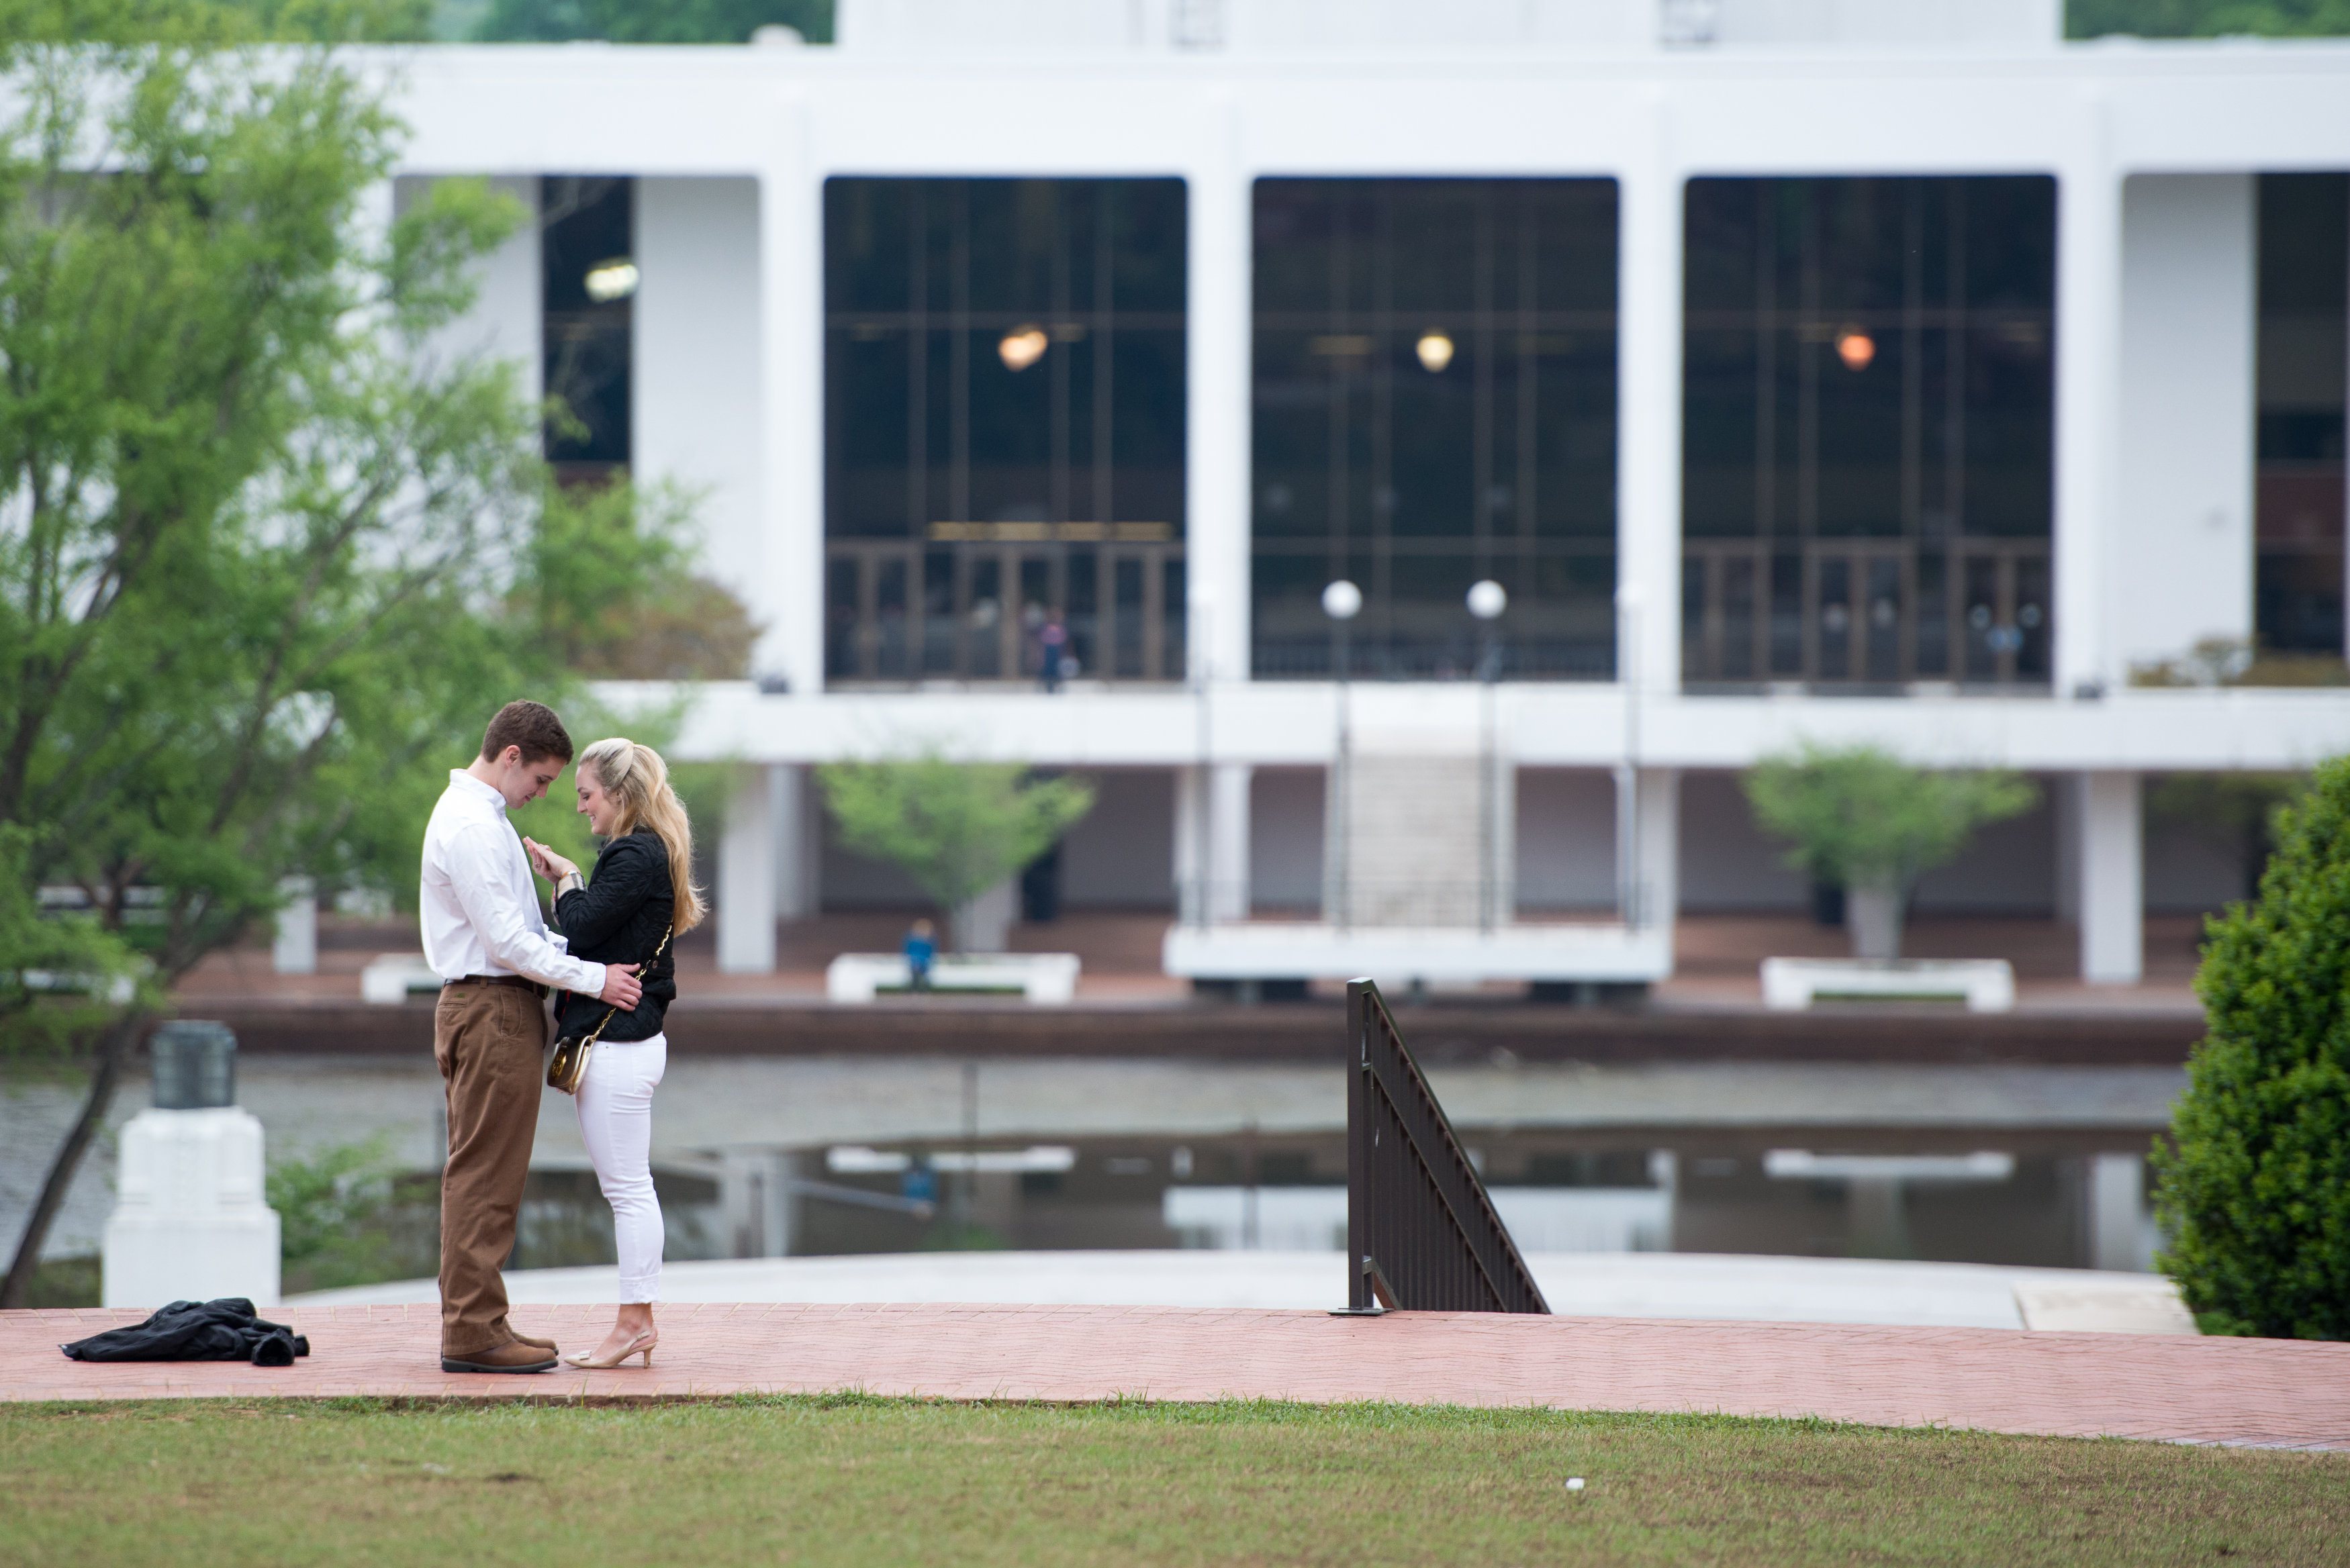 Image 8 of Clemson Marriage Proposal